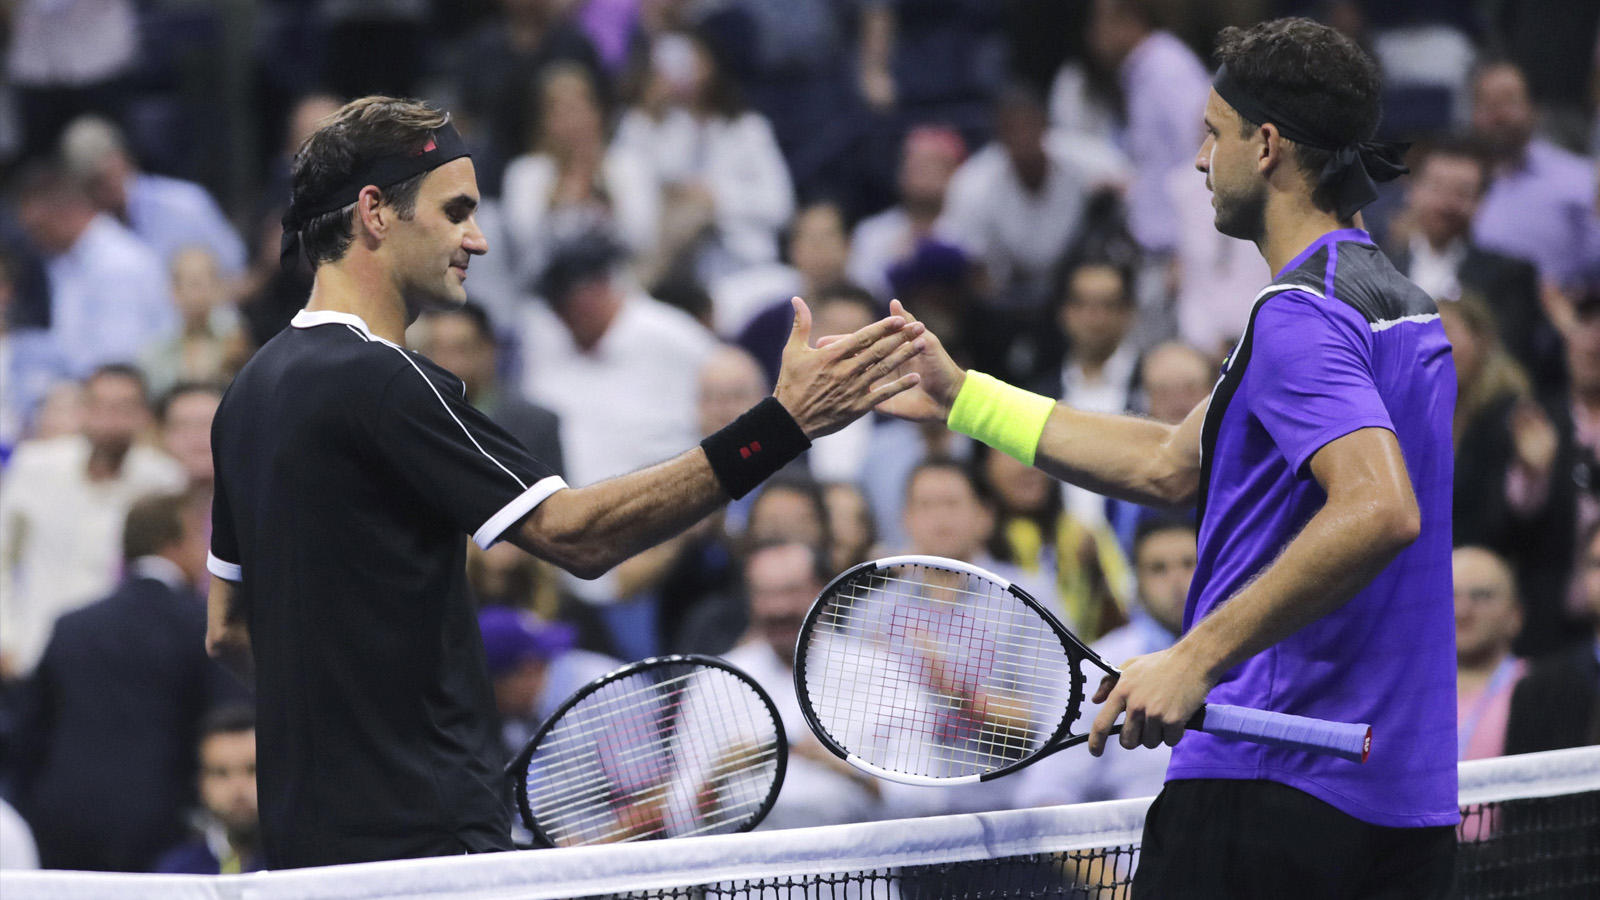 us-open-roger-federer-knocked-out-of-quarterfinals-by-grigor-dimitrov